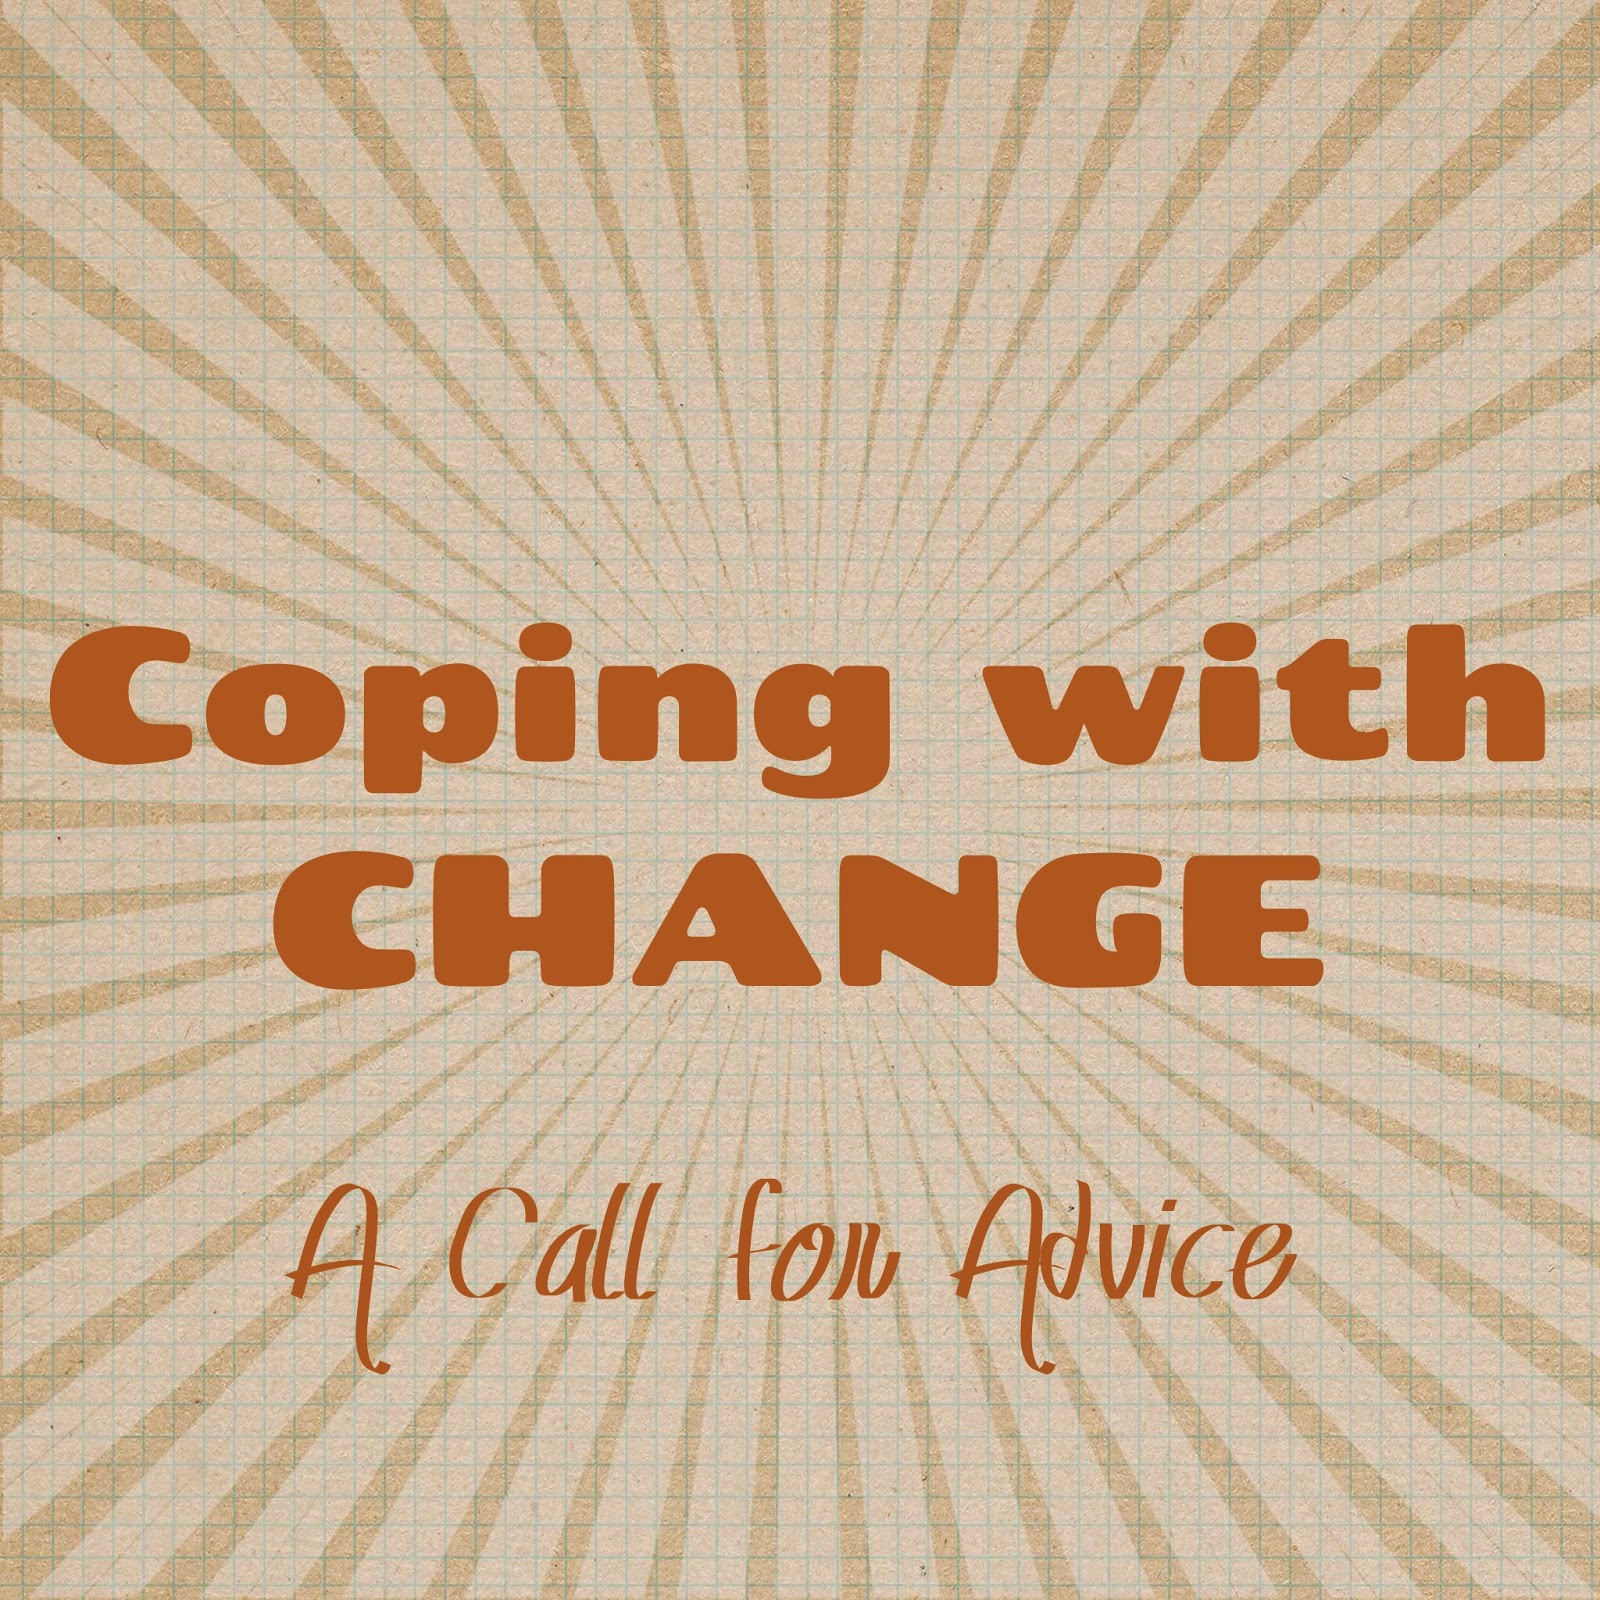 Coping with Change A Call for Advice